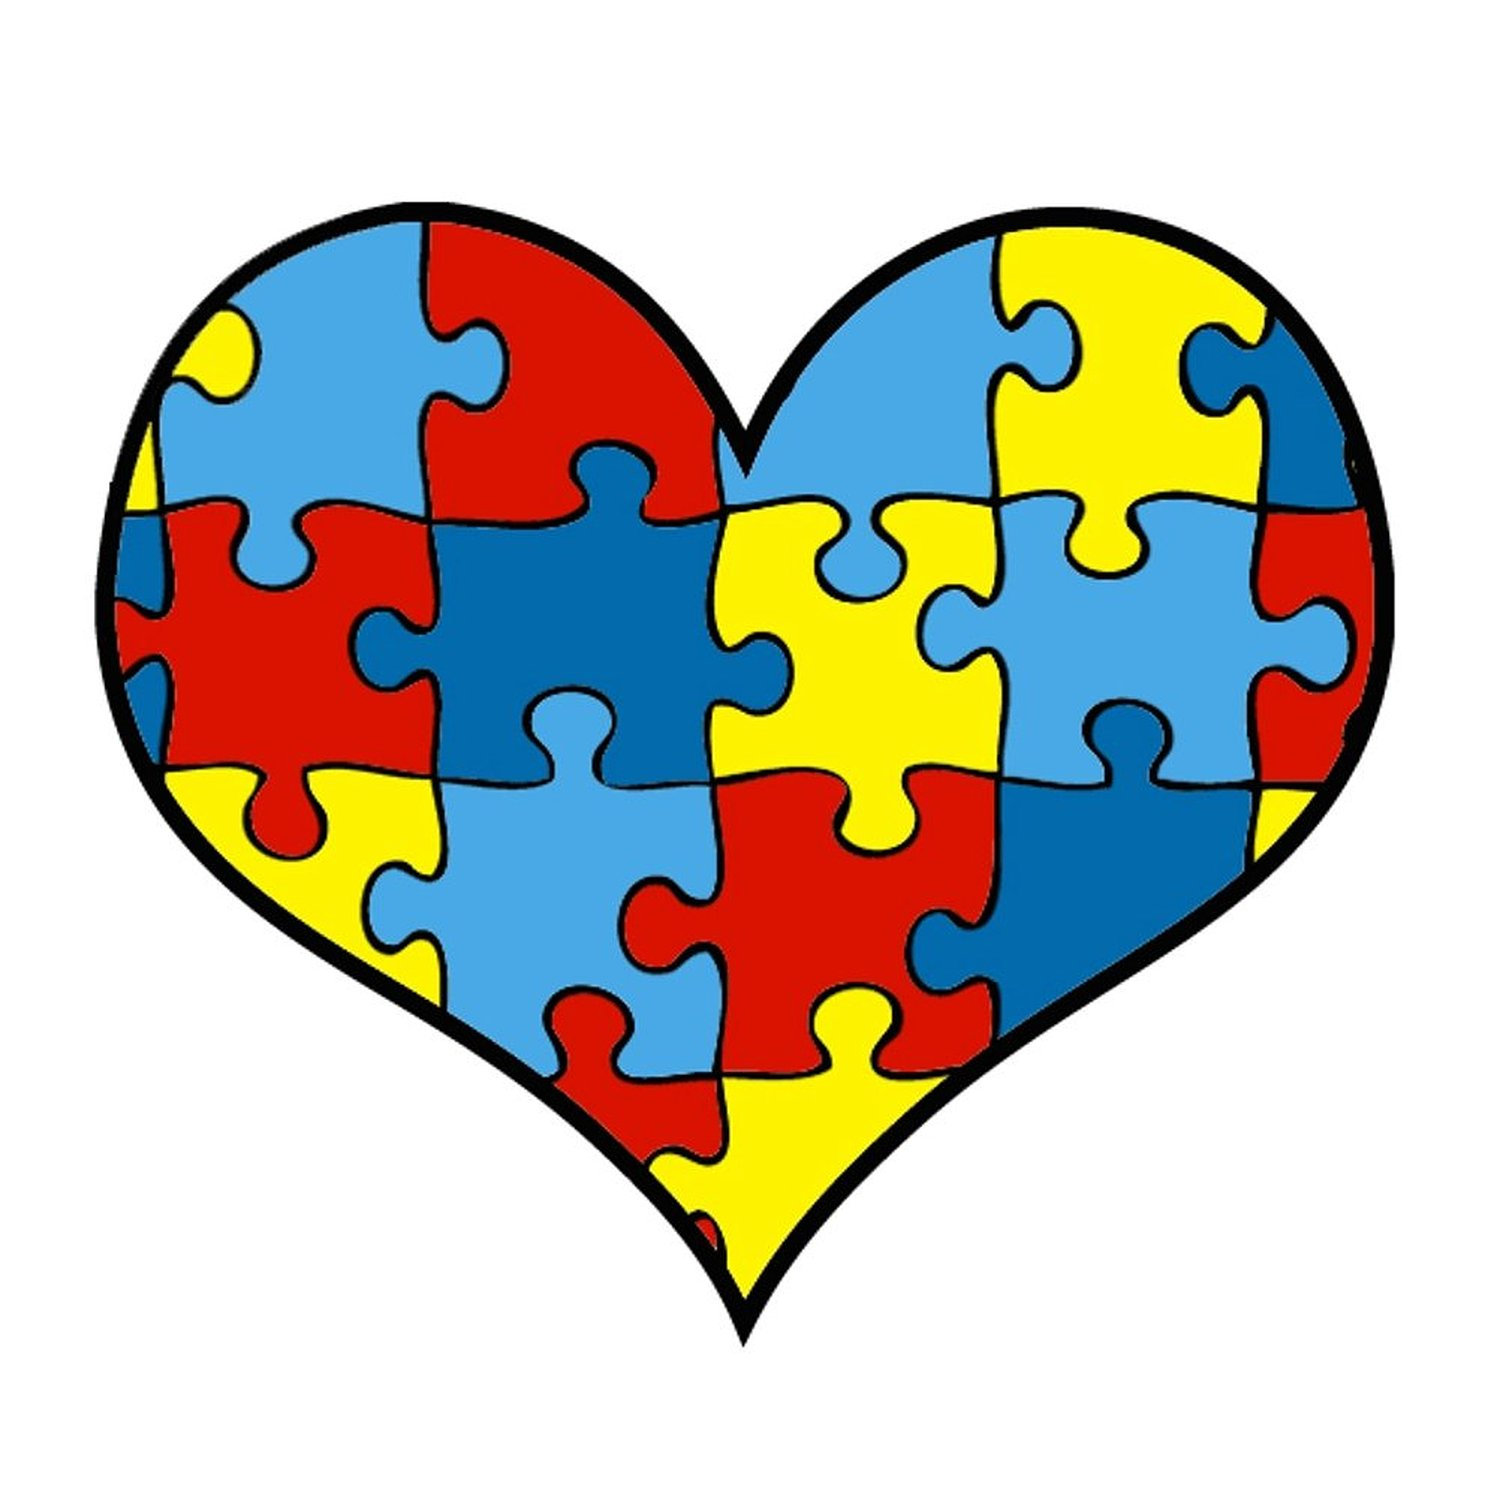 Puzzle clipart aspergers. Discussing the graphical symbol